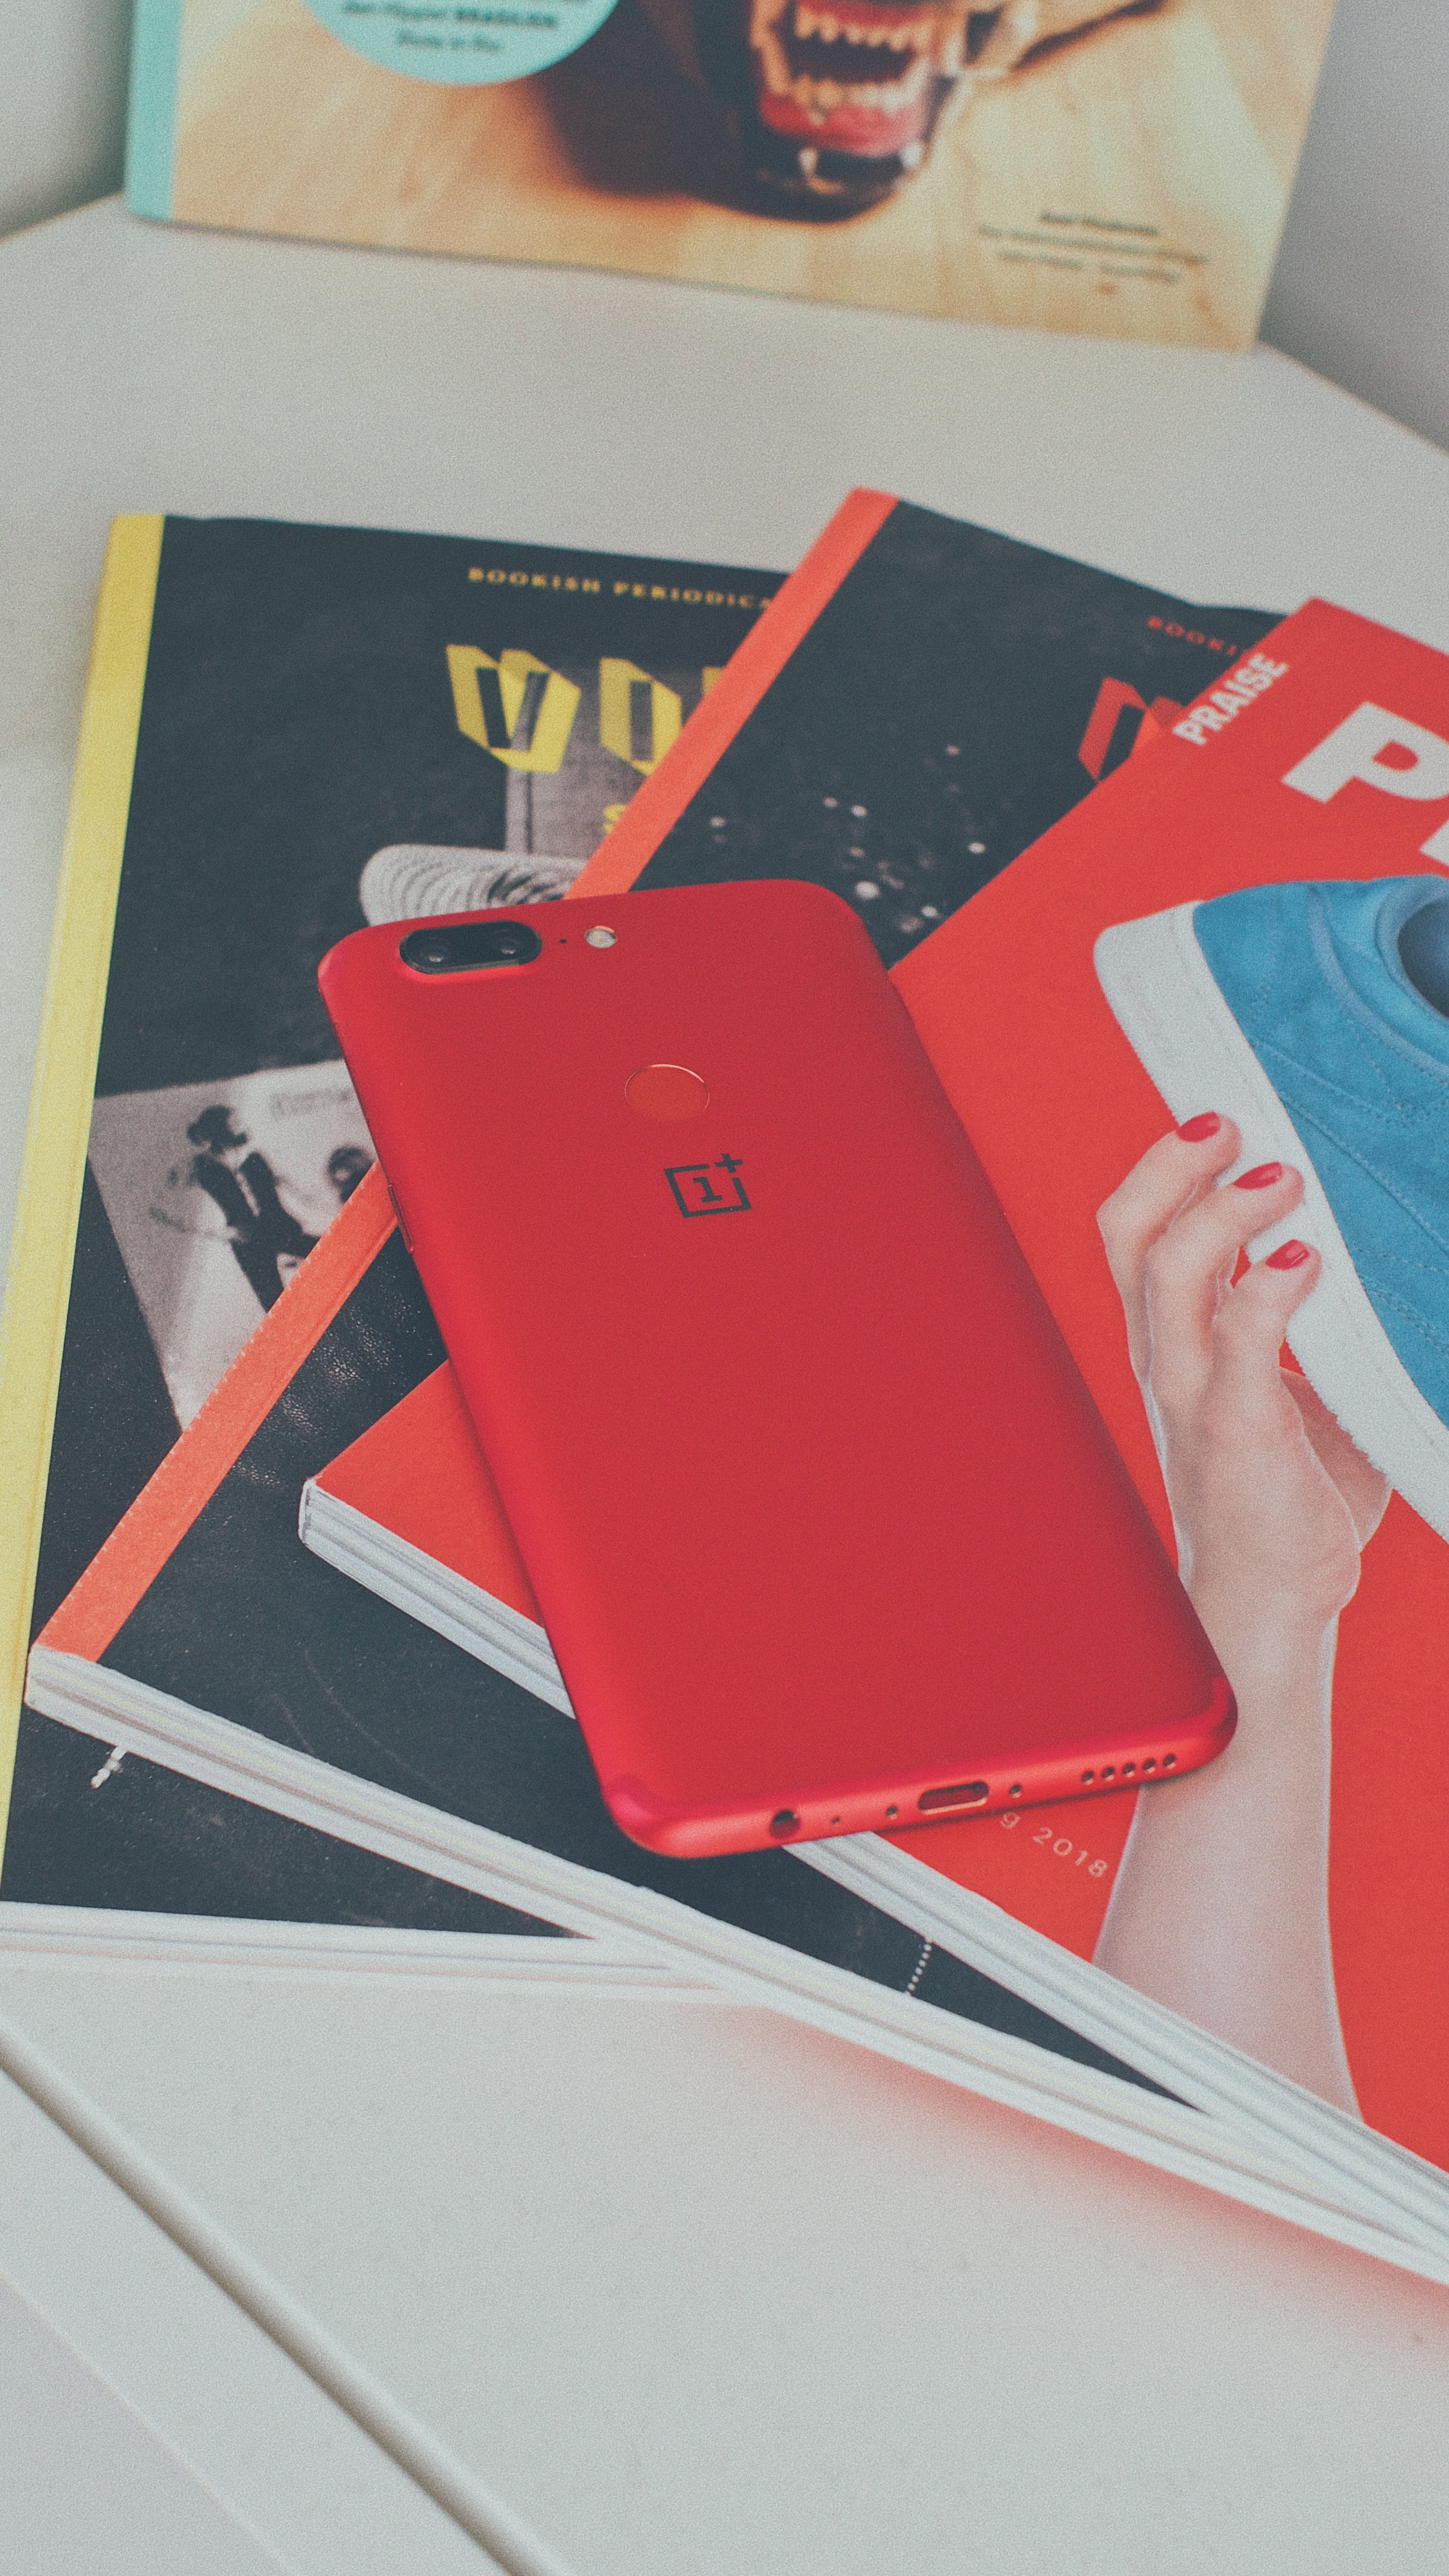 Red Oneplus Smartphone on Books